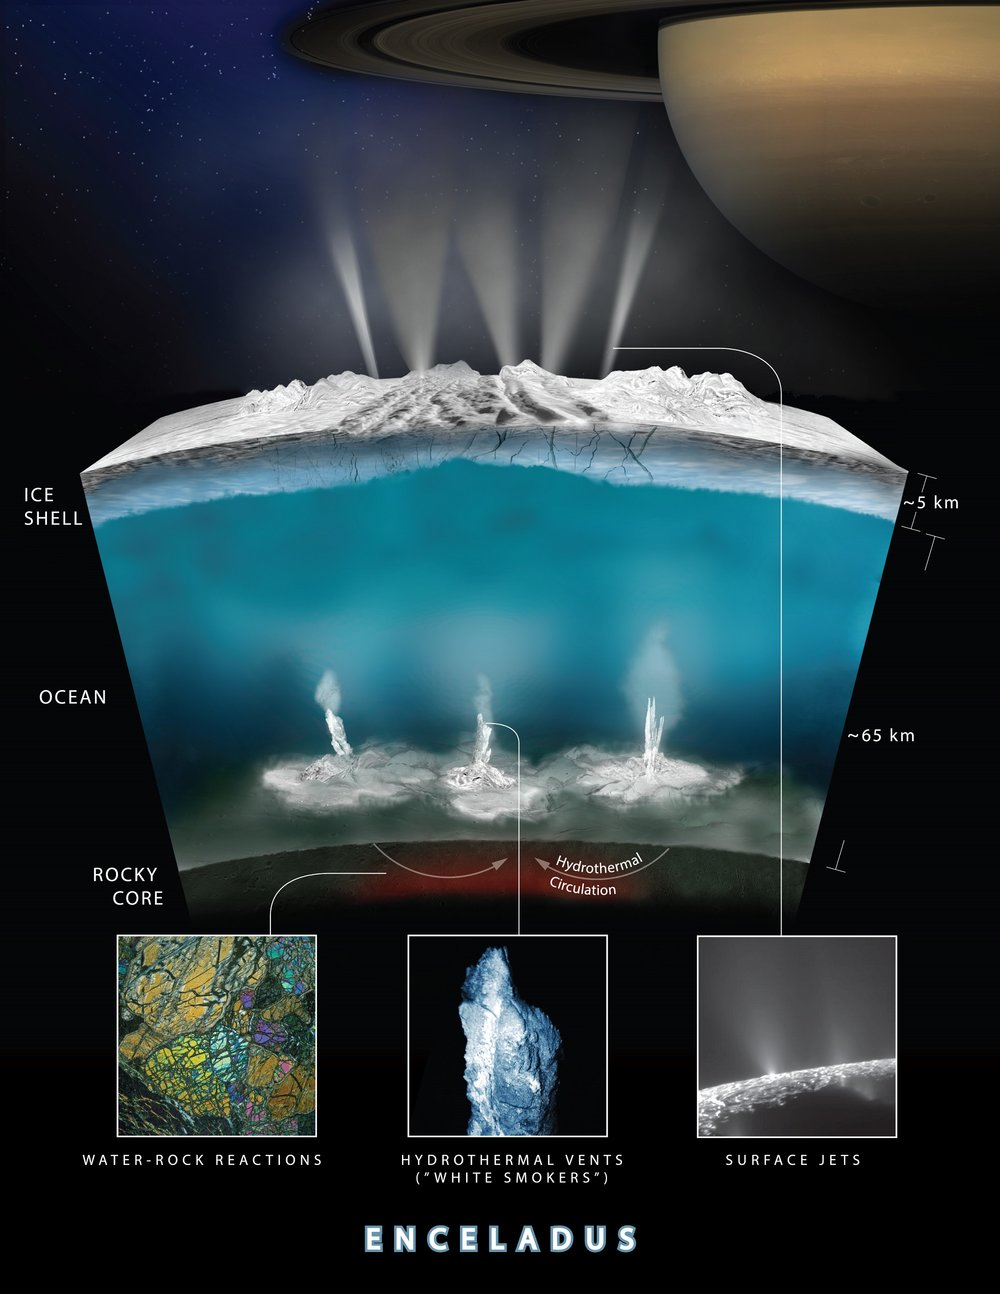 Artist rendering showing an interior cross-section of the crust of Enceladus, which shows how hydrothermal activity may be causing the plumes of water at the moon's surface. - Image Credits: NASA-GSFC/SVS, NASA/JPL-Caltech/Southwest Research Institute (click to enlarge)